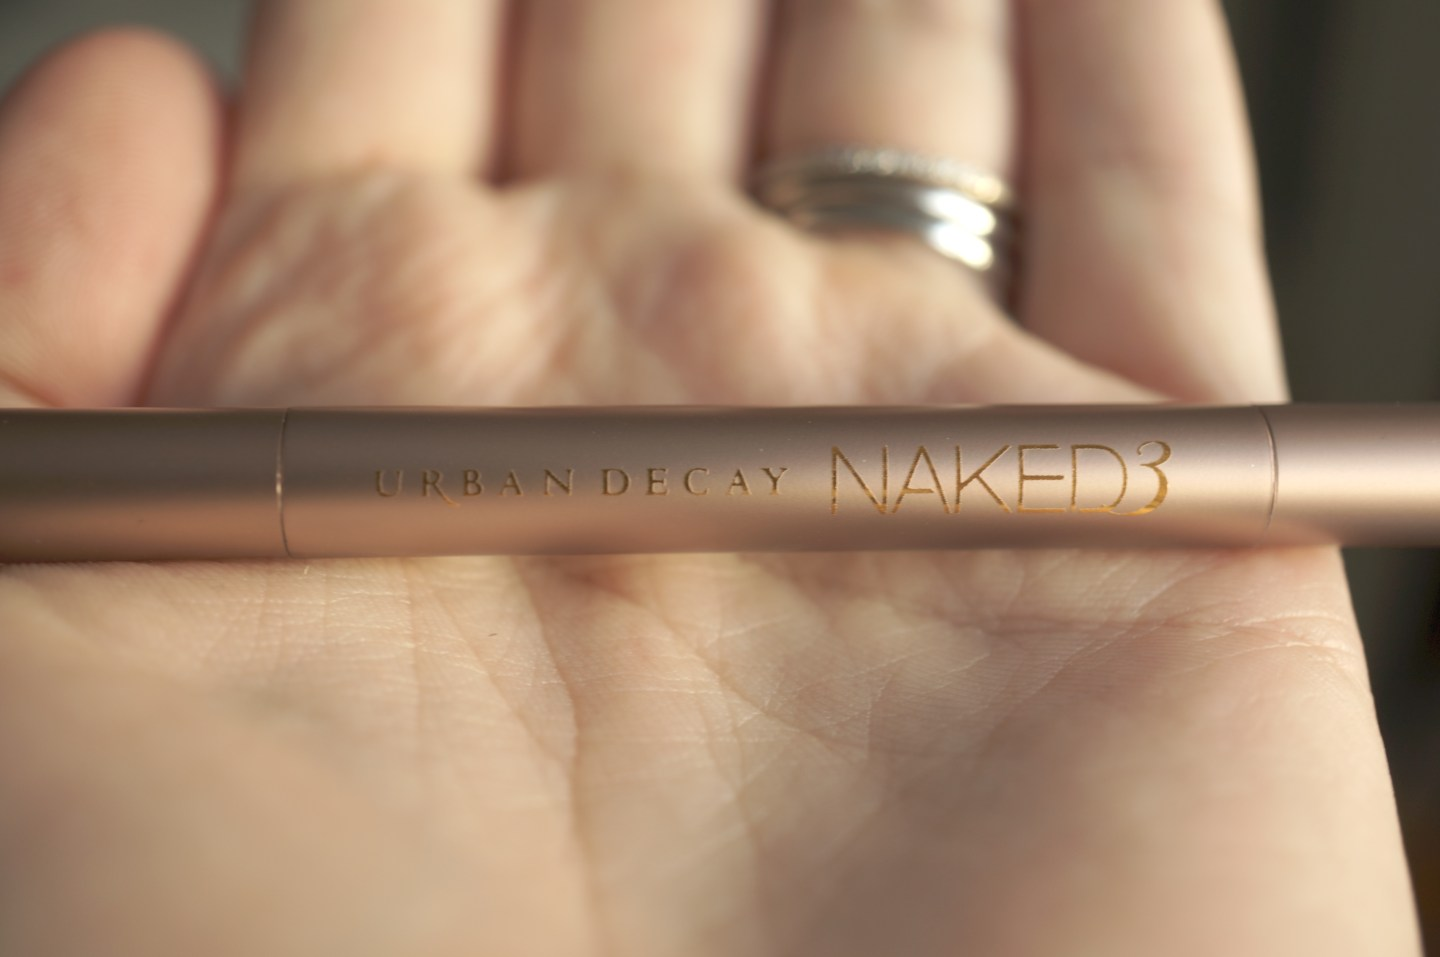 urban decay naked 3 brush